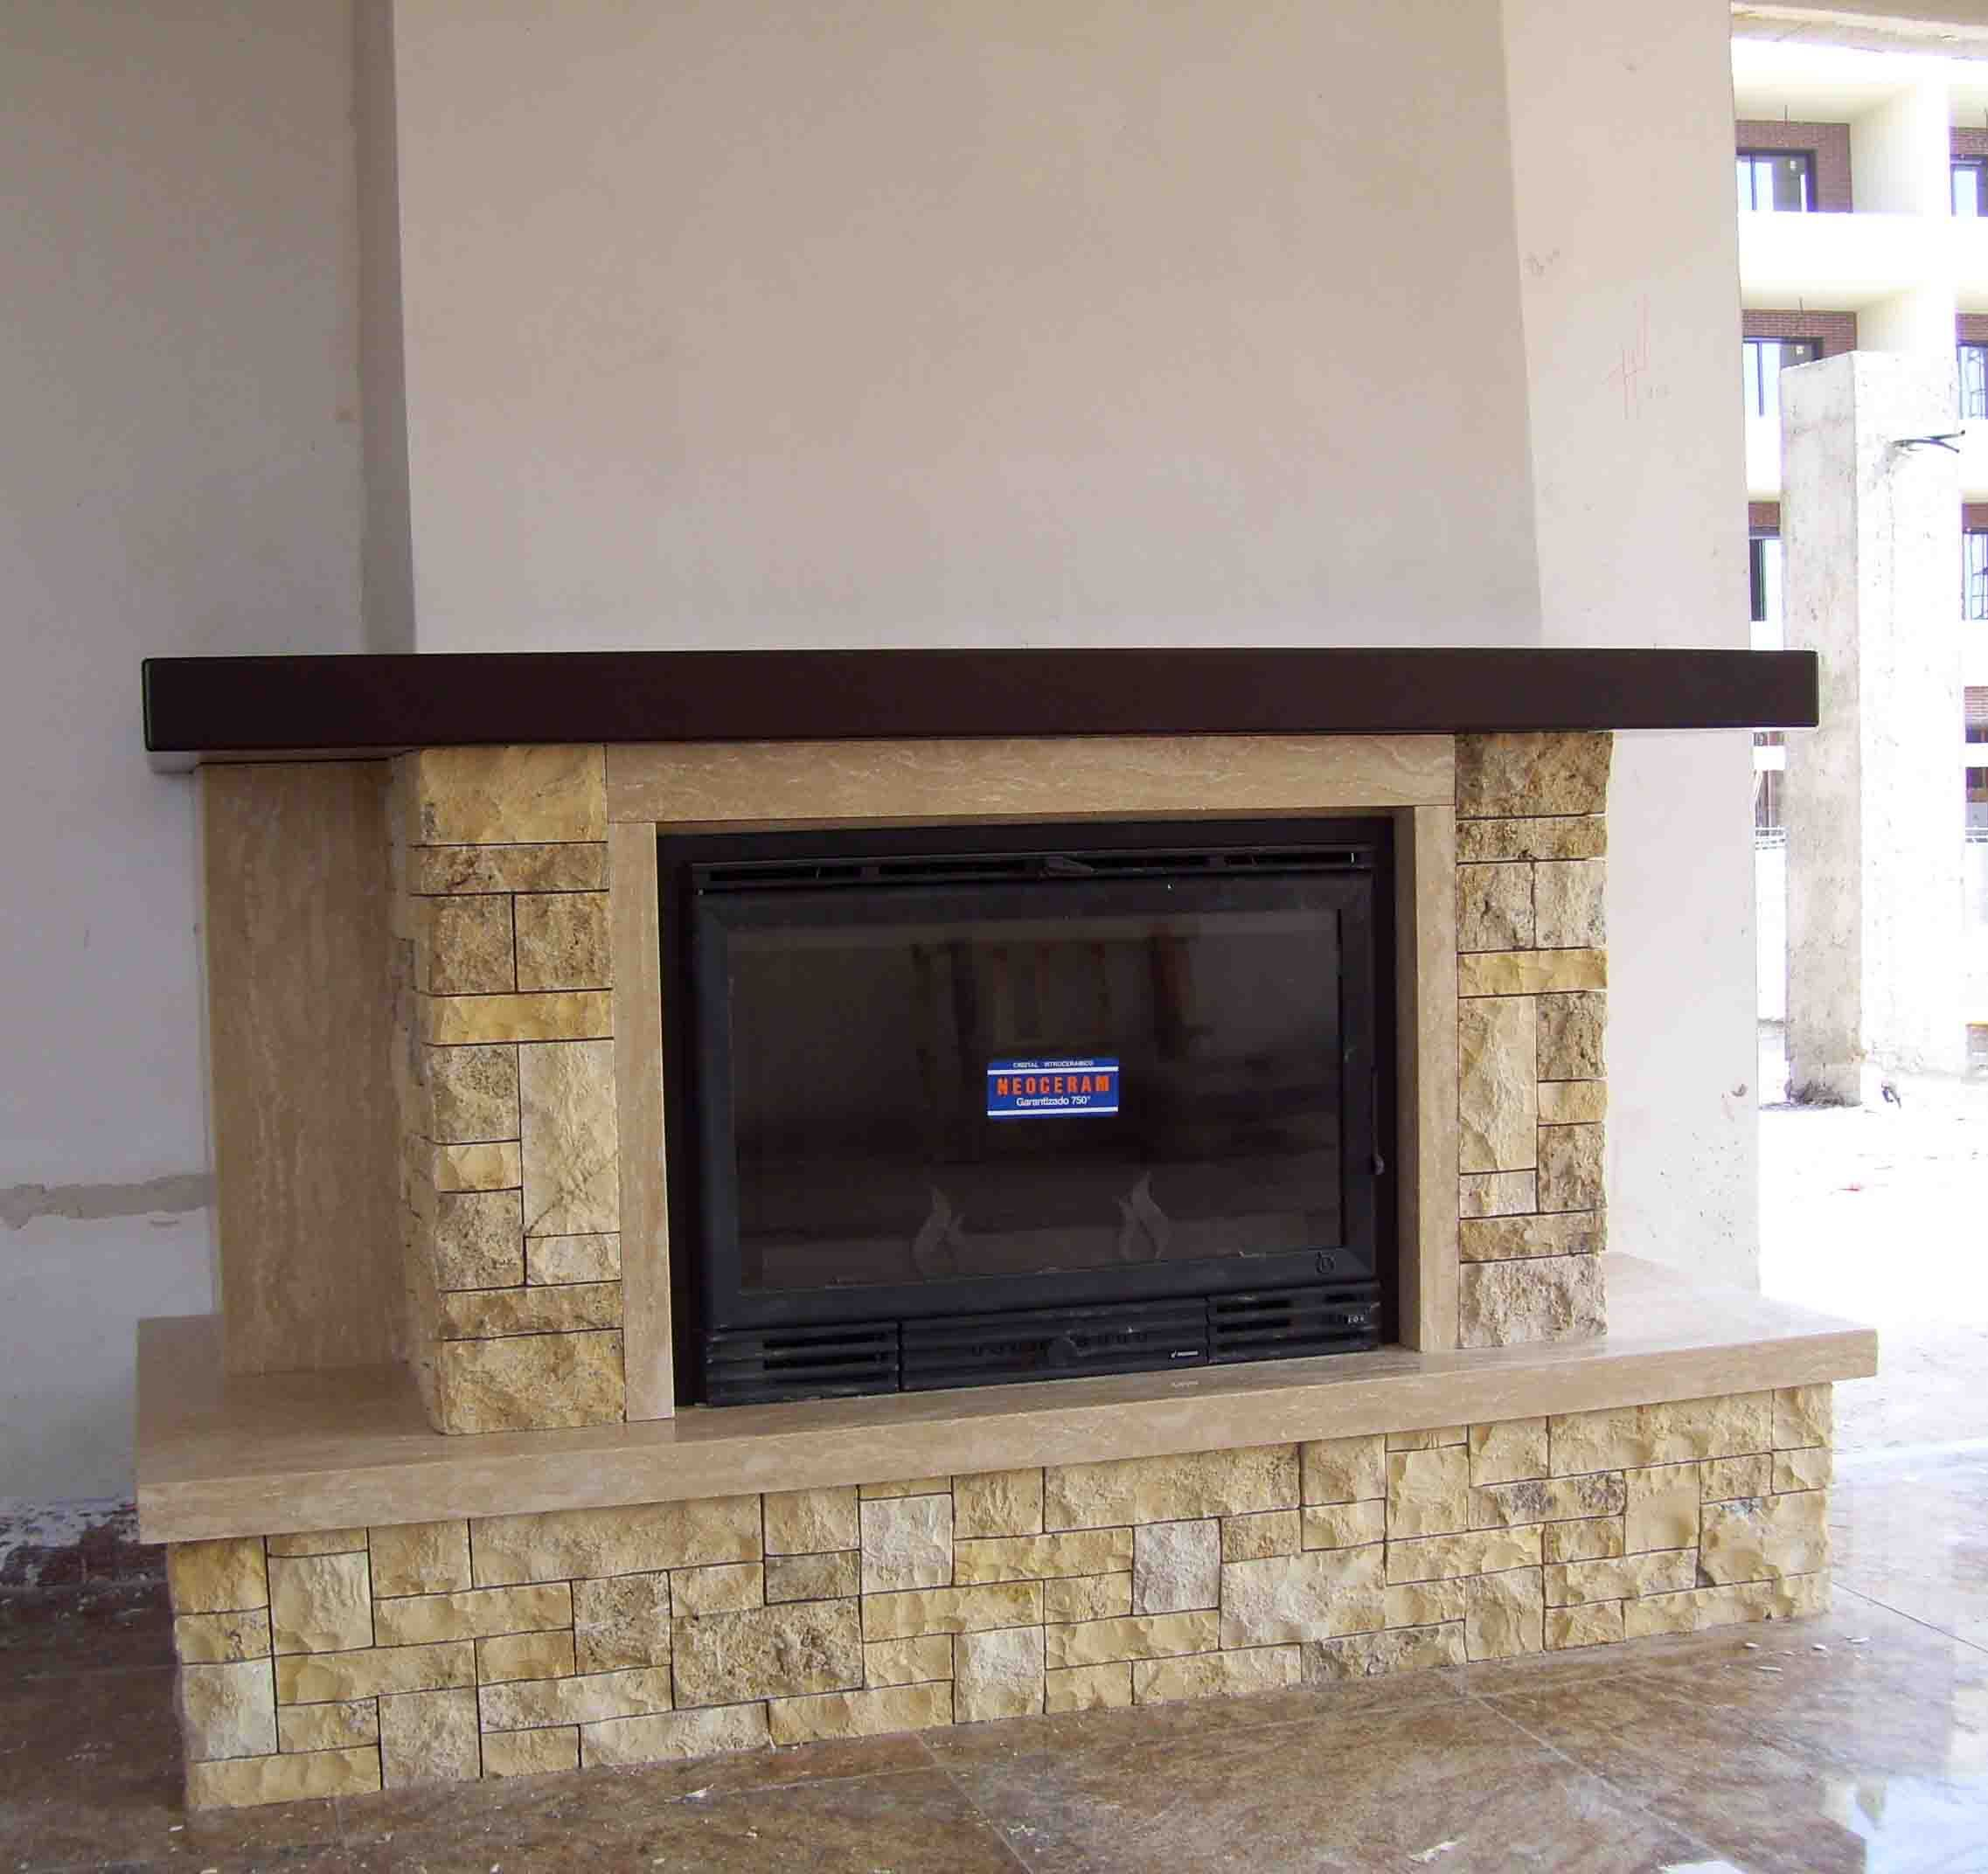 Chimeneas de piedra buy chimeneas product on interior exterior design - Chimeneas de interior ...